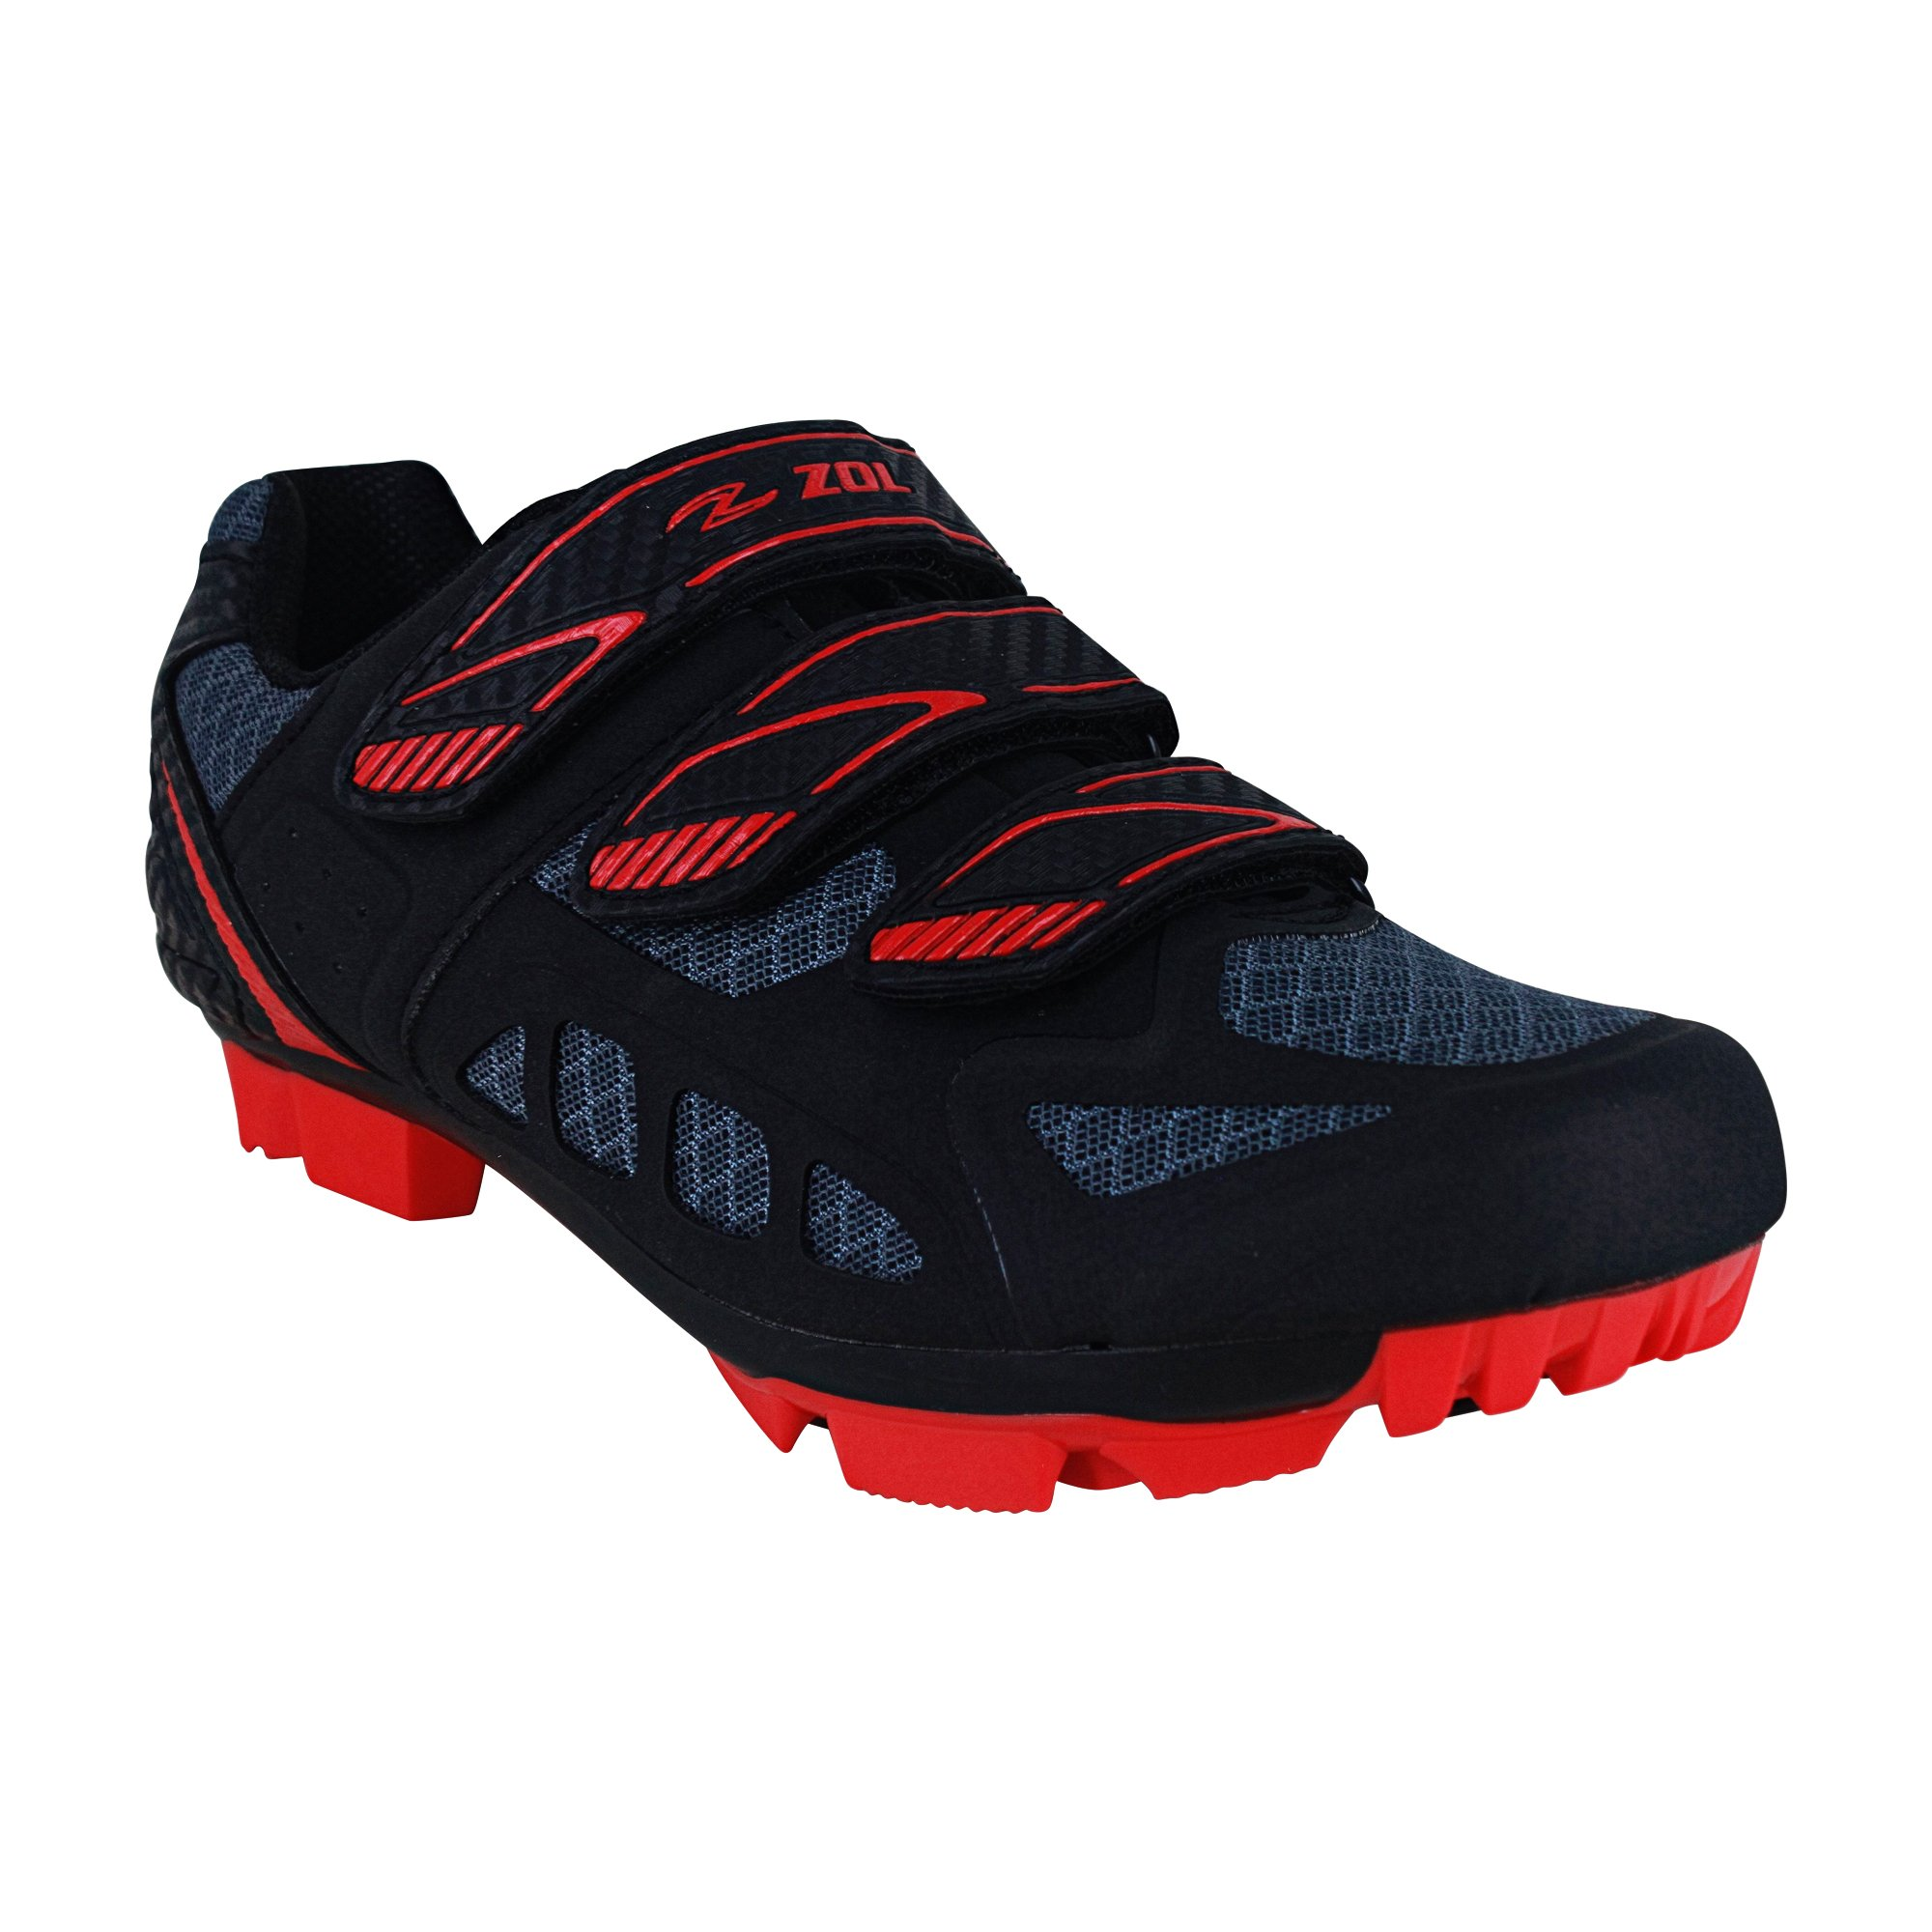 Zol Predator MTB Mountain Bike and Indoor Cycling Shoes 39 by Zol